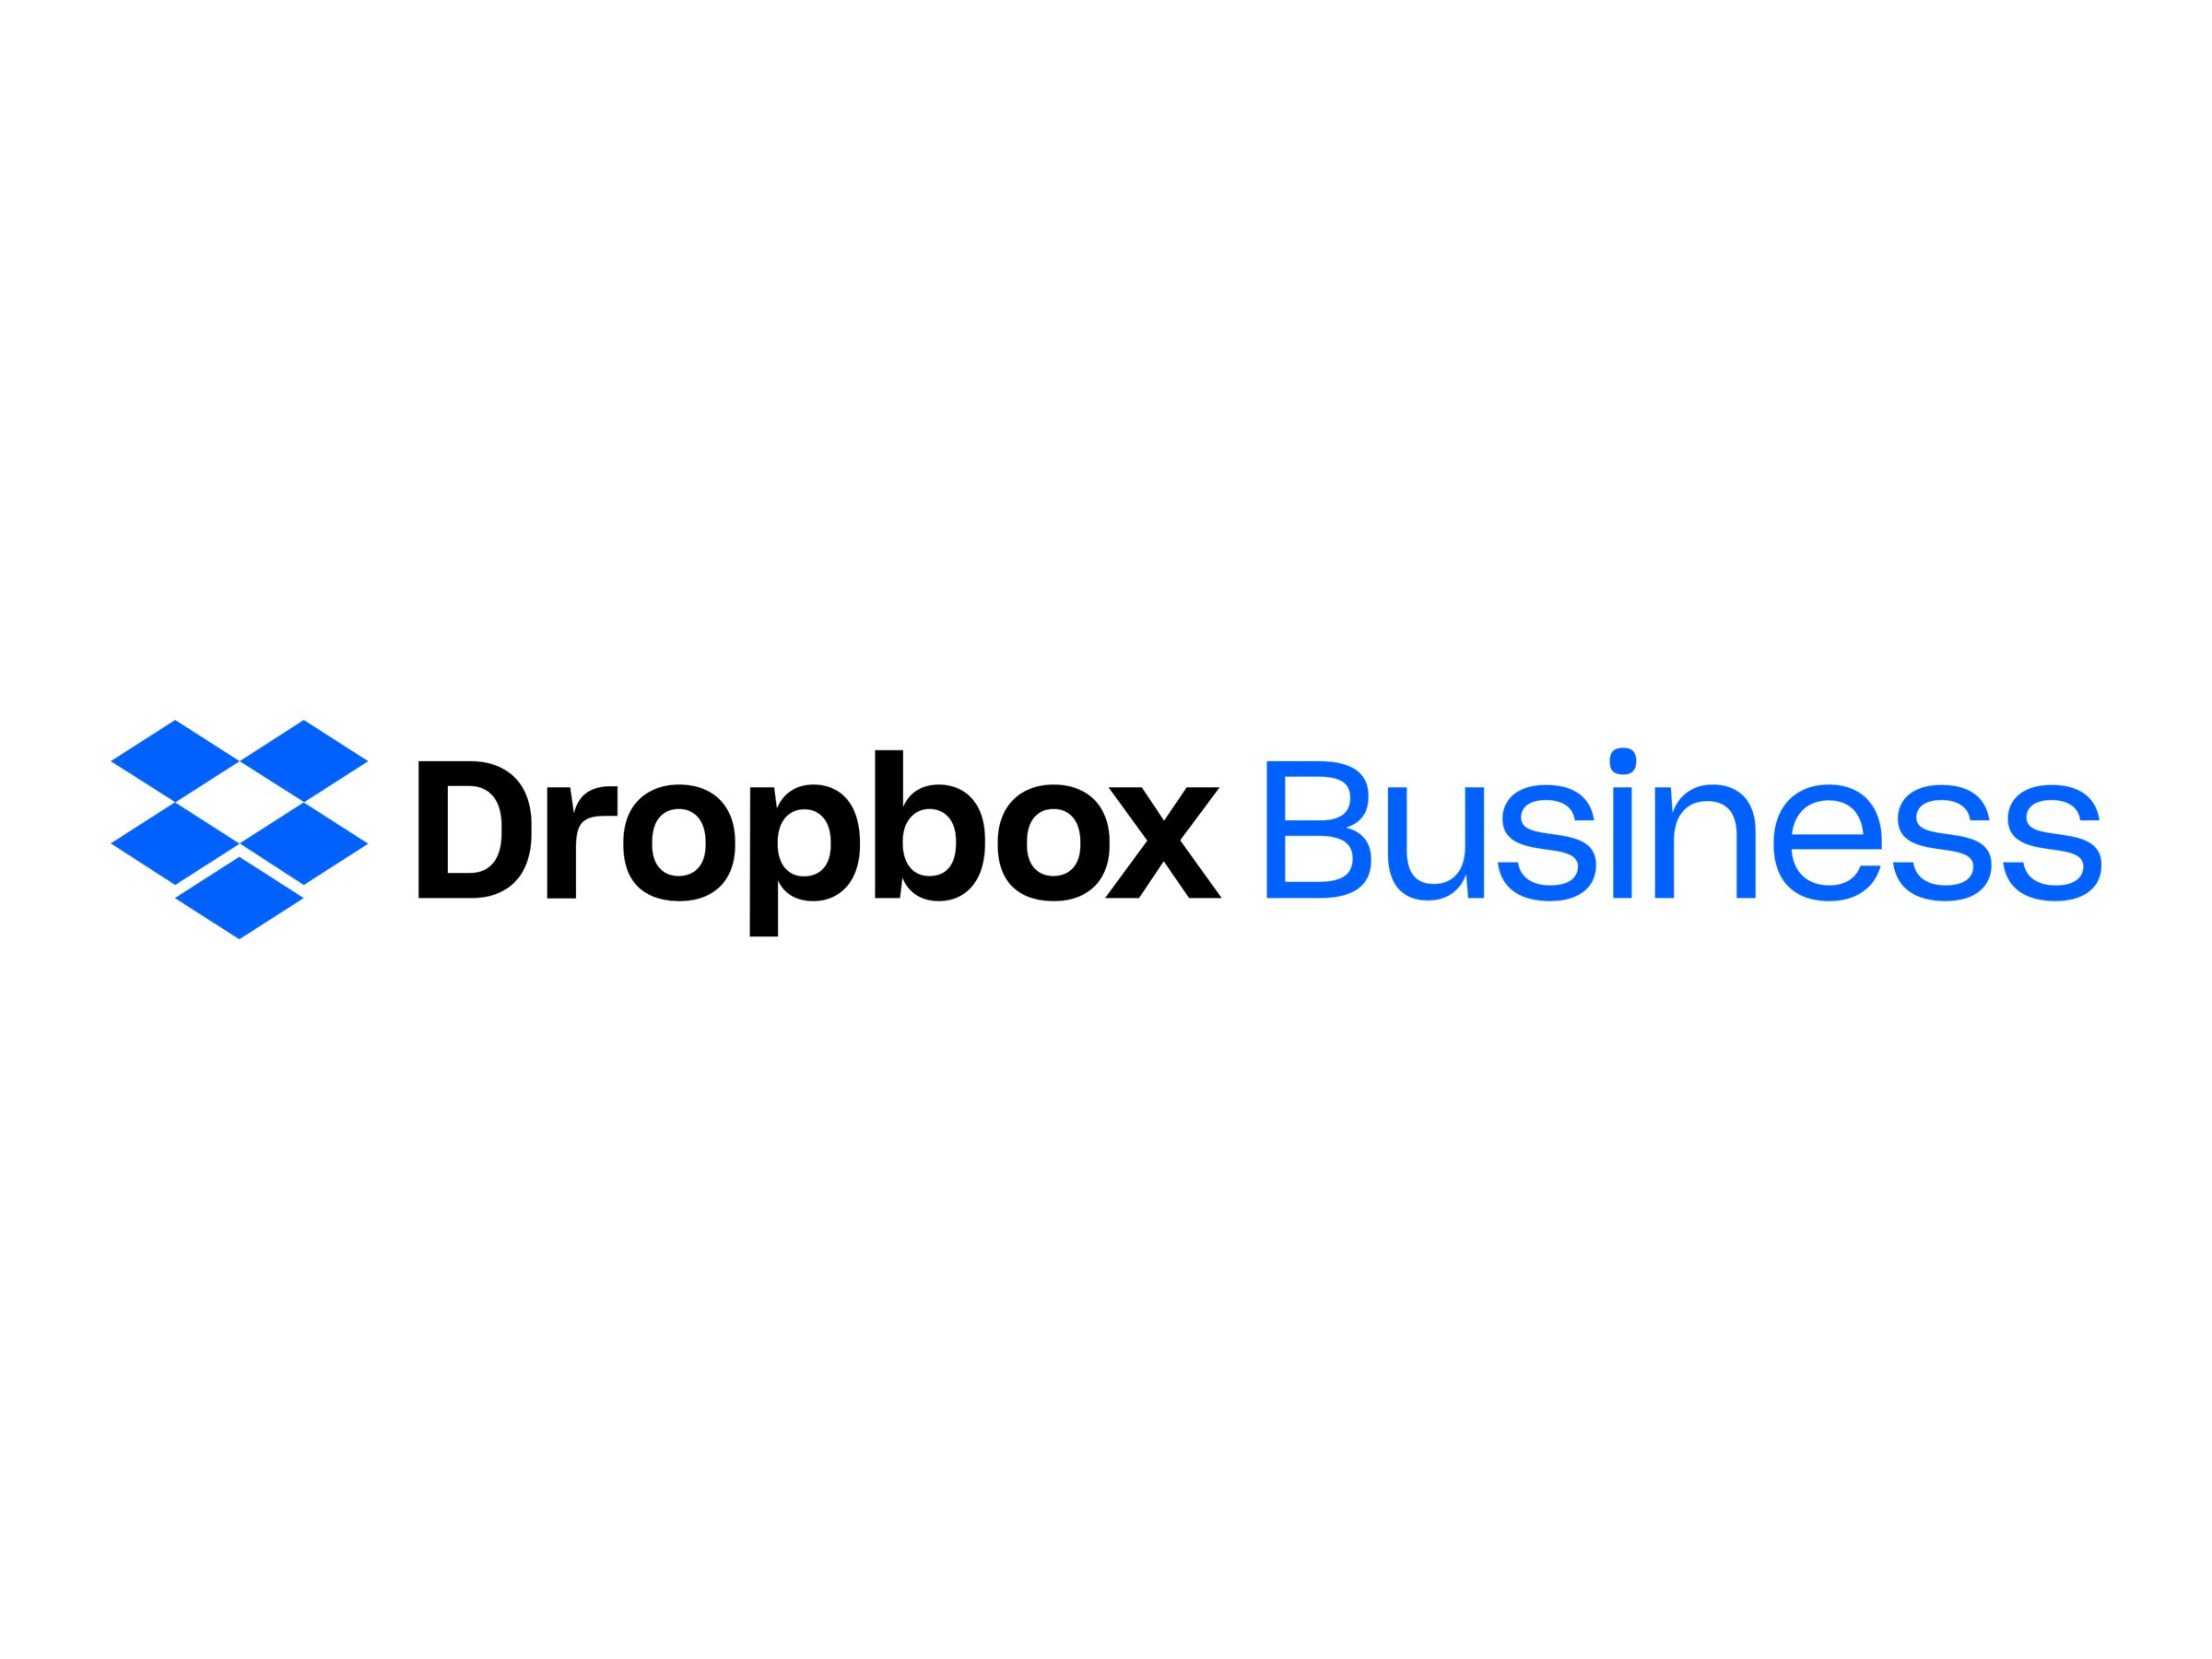 Dropbox Business Standard - Abonnement-Upgrade-Lizenz (7 Monate) - 1 Benutzer - gehostet - Volumen - 601